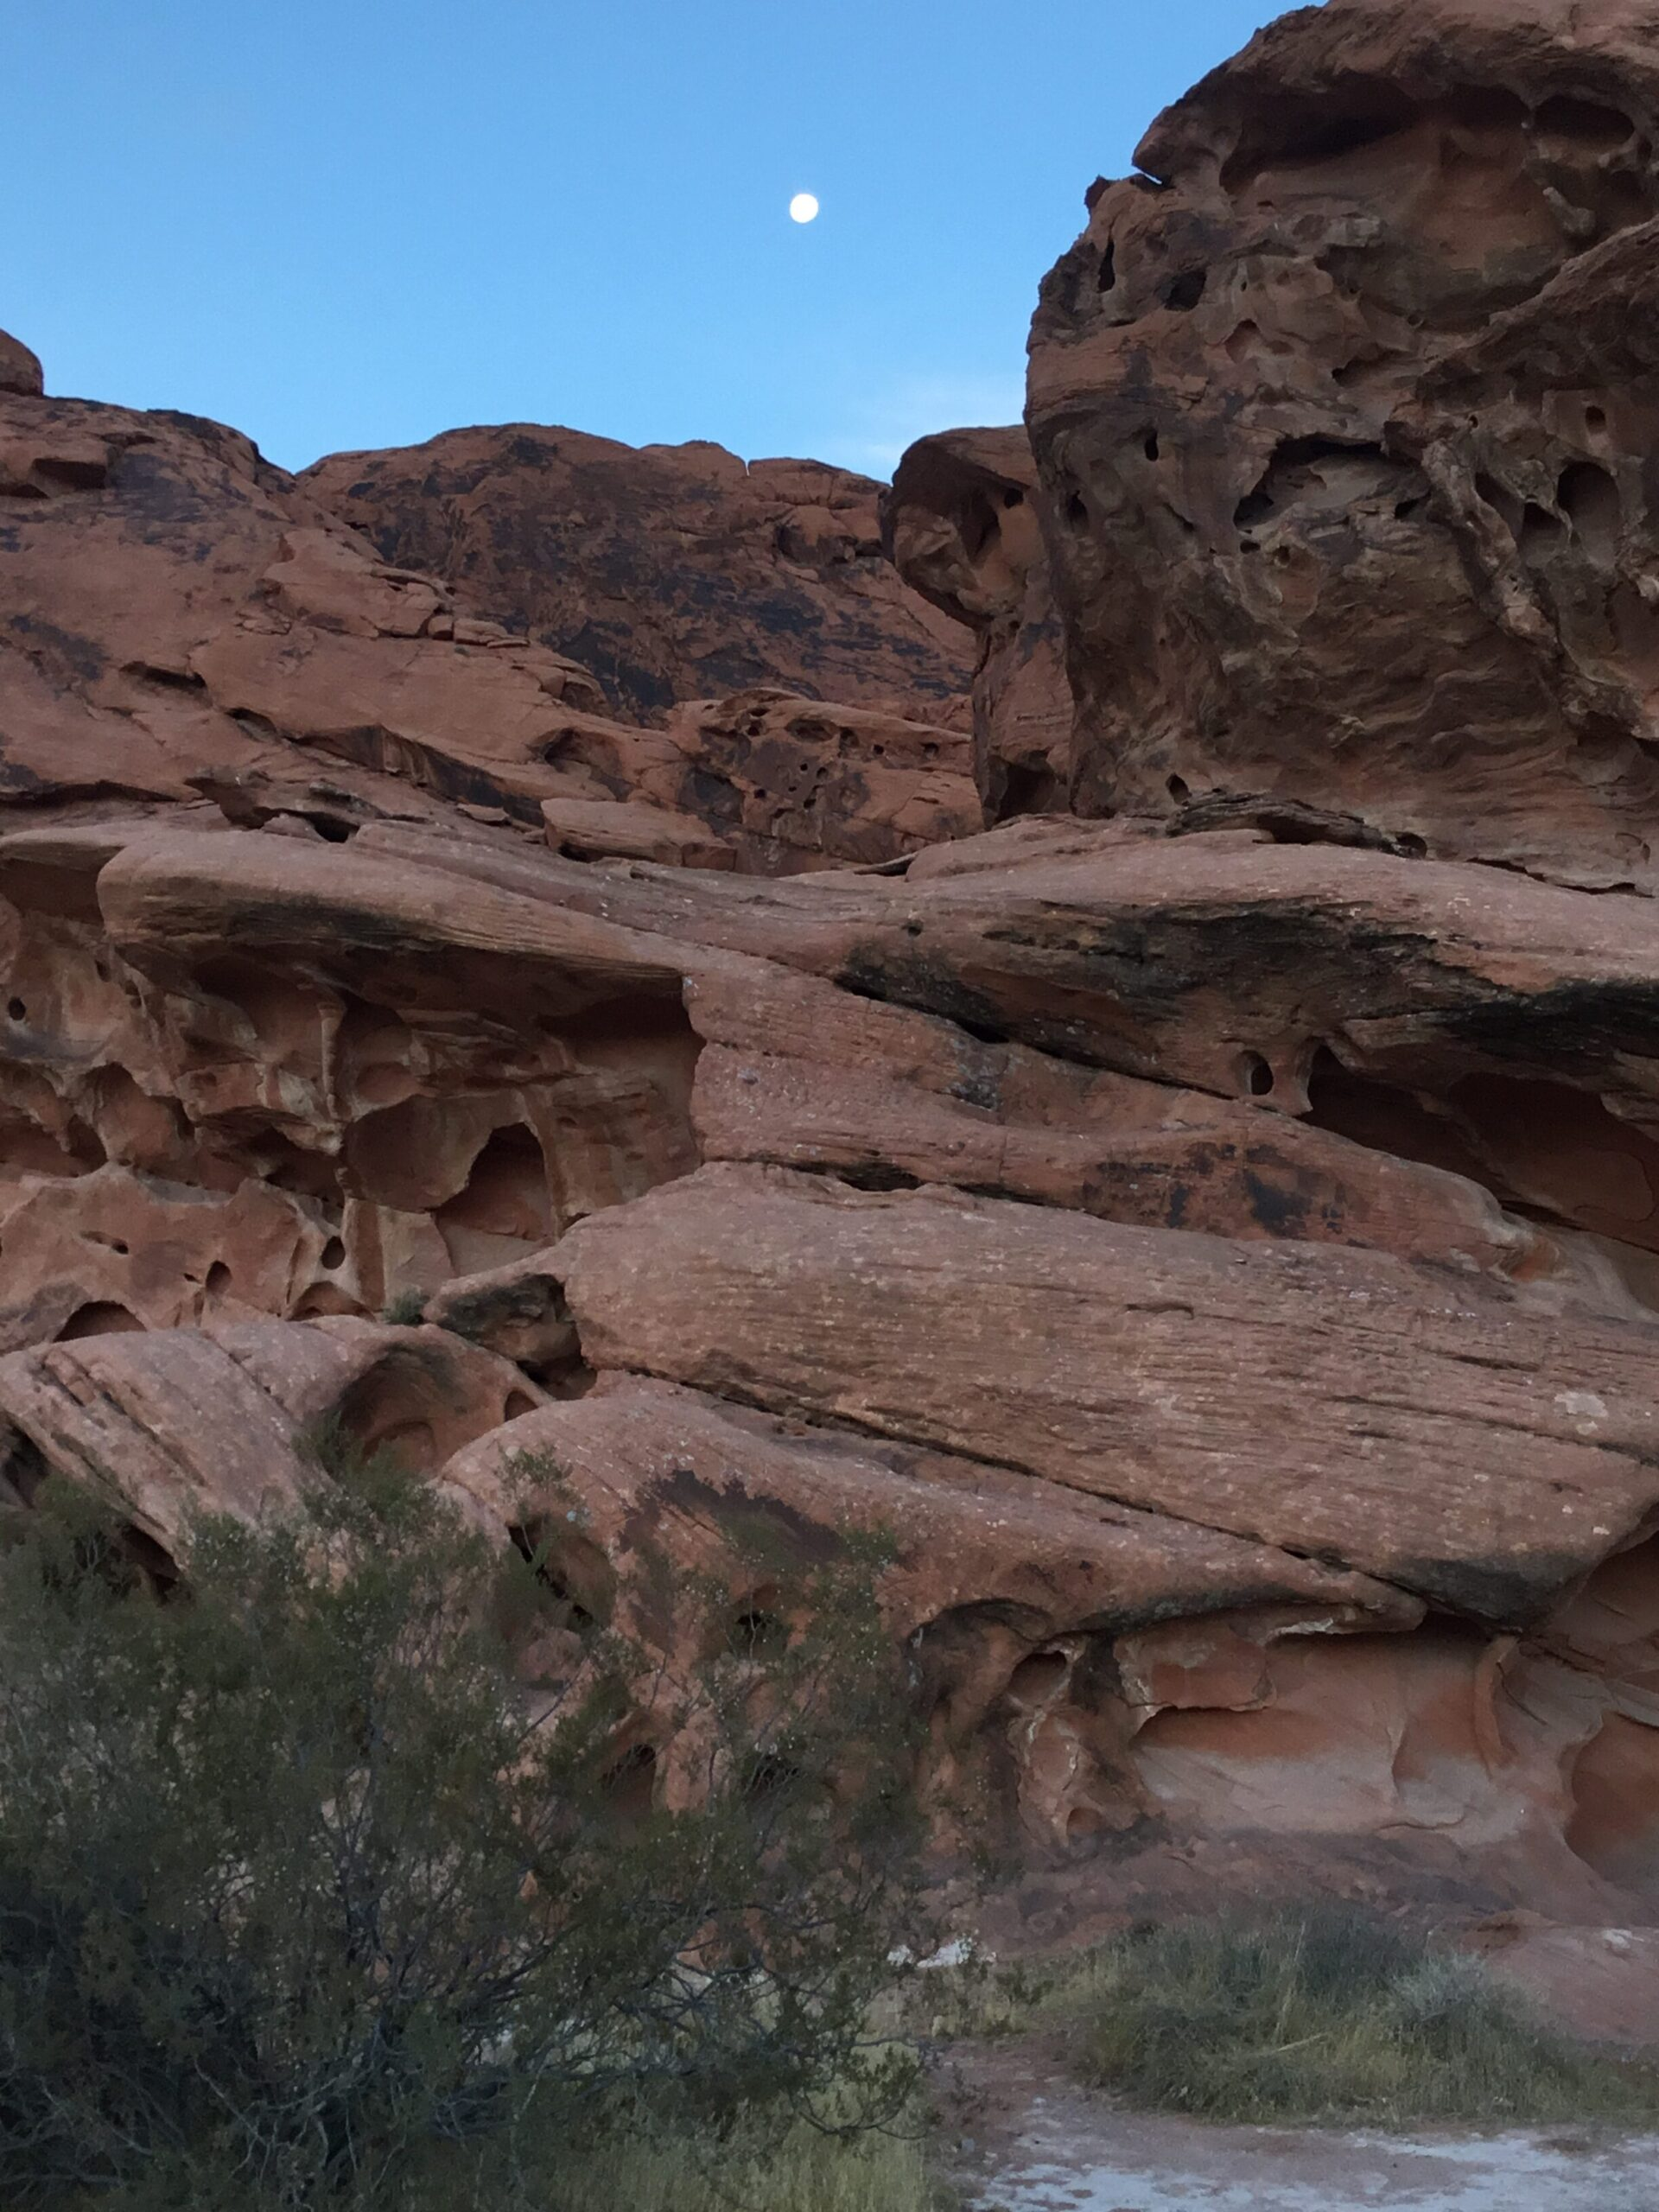 Morning at Valley of Fire with the moon still high in the sky